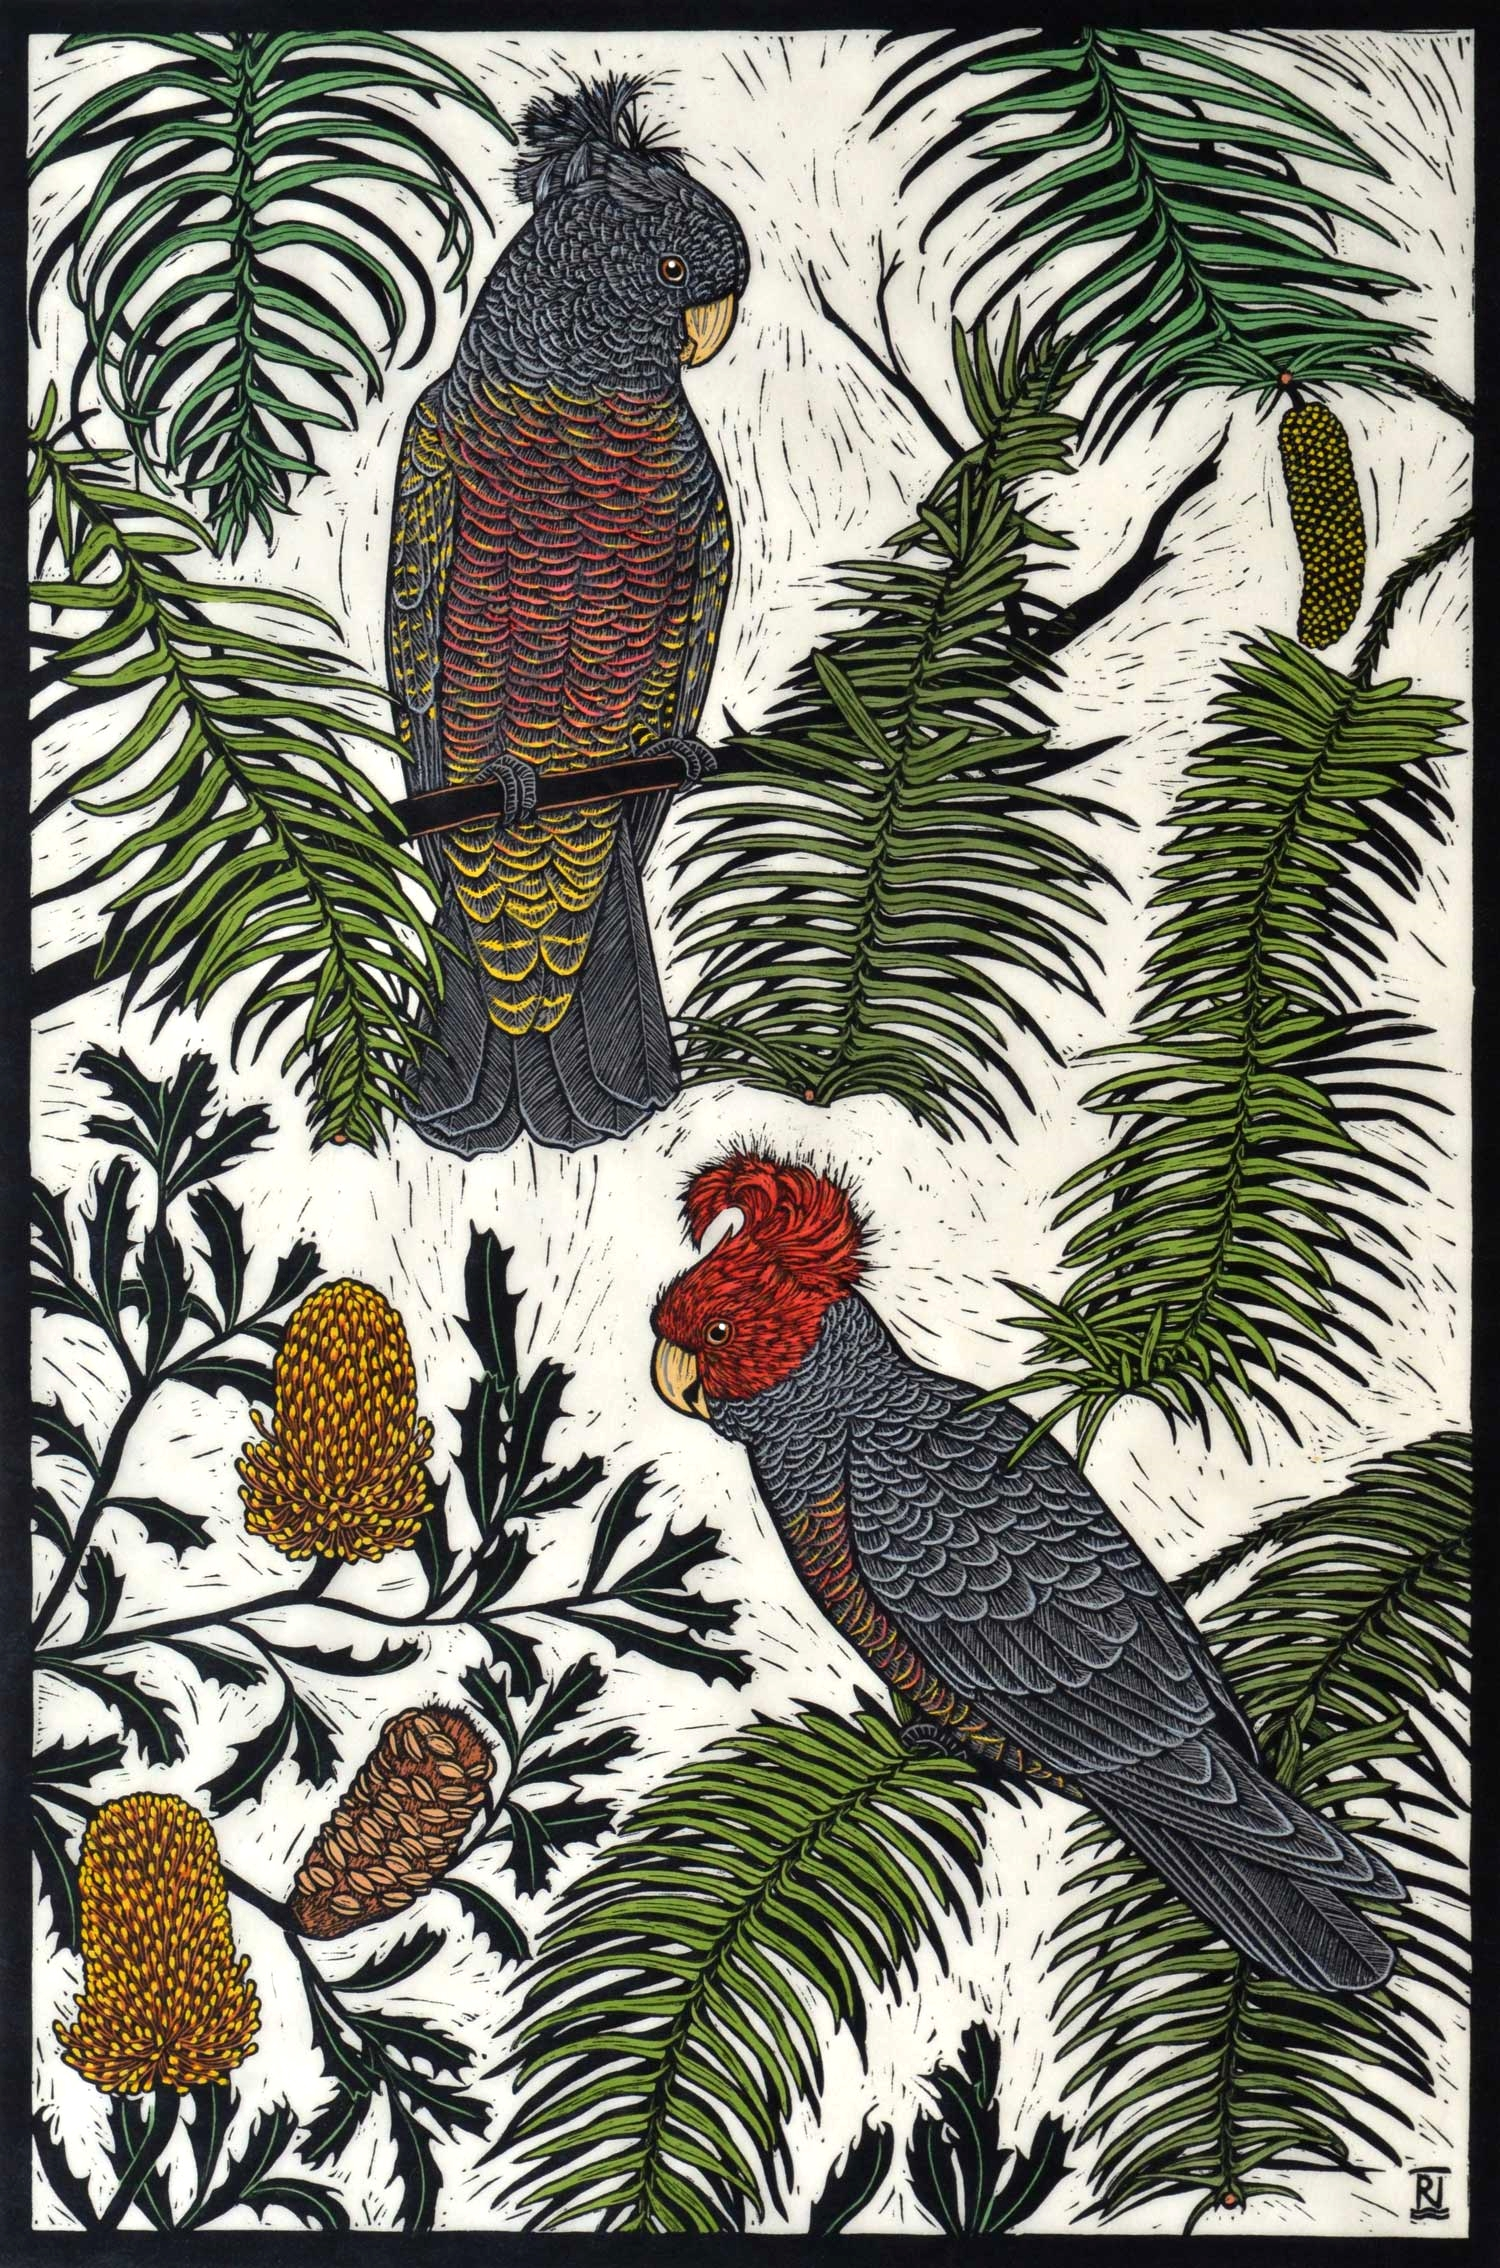 GANG-GANG COCKATOO & WOLLEMI PINE  75 X 50 CM EDITION OF 50  HAND COLOURED LINOCUT ON HANDMADE JAPANESE PAPER  $1,550